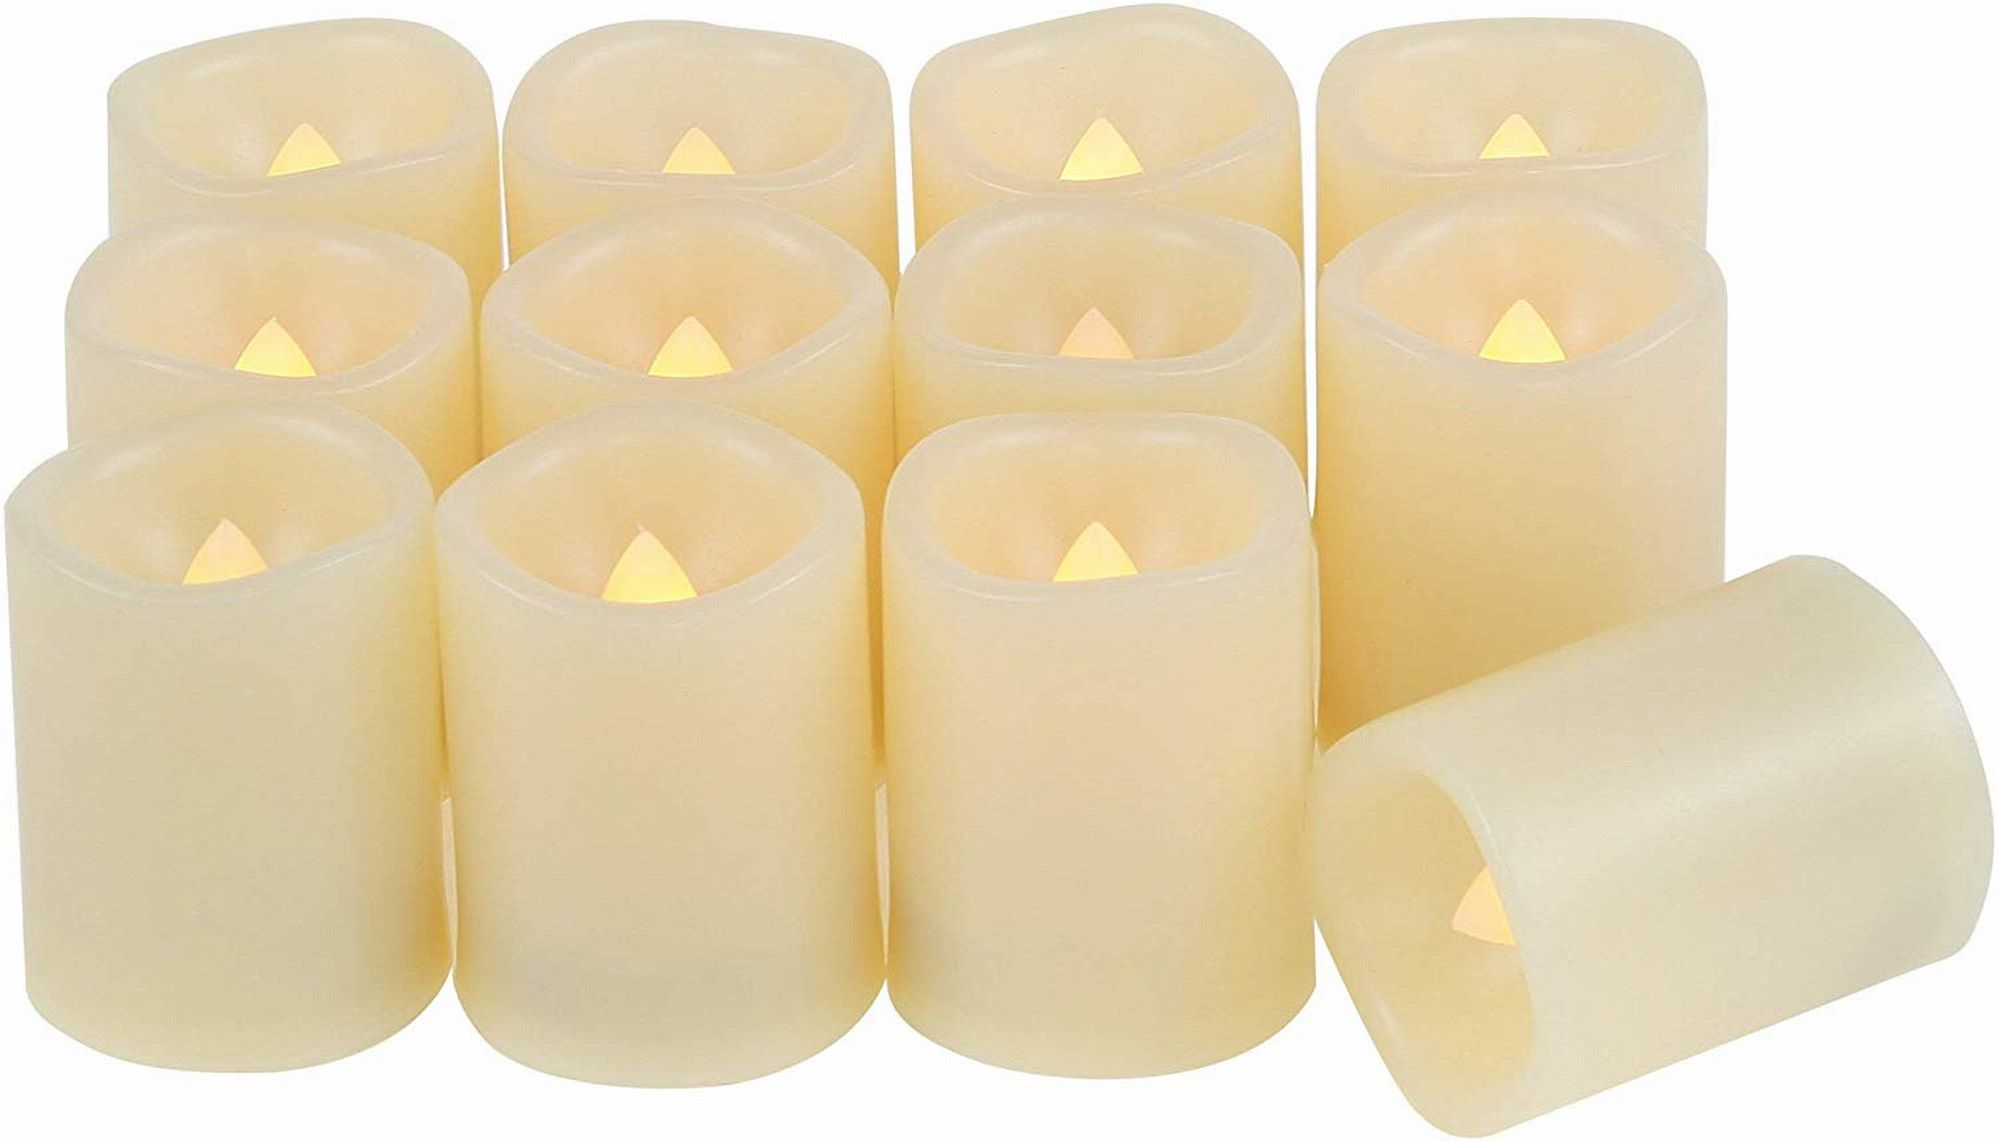 Set of 12 Round Melted Edge Votive Flameless LED Candles with Timer - Ivory